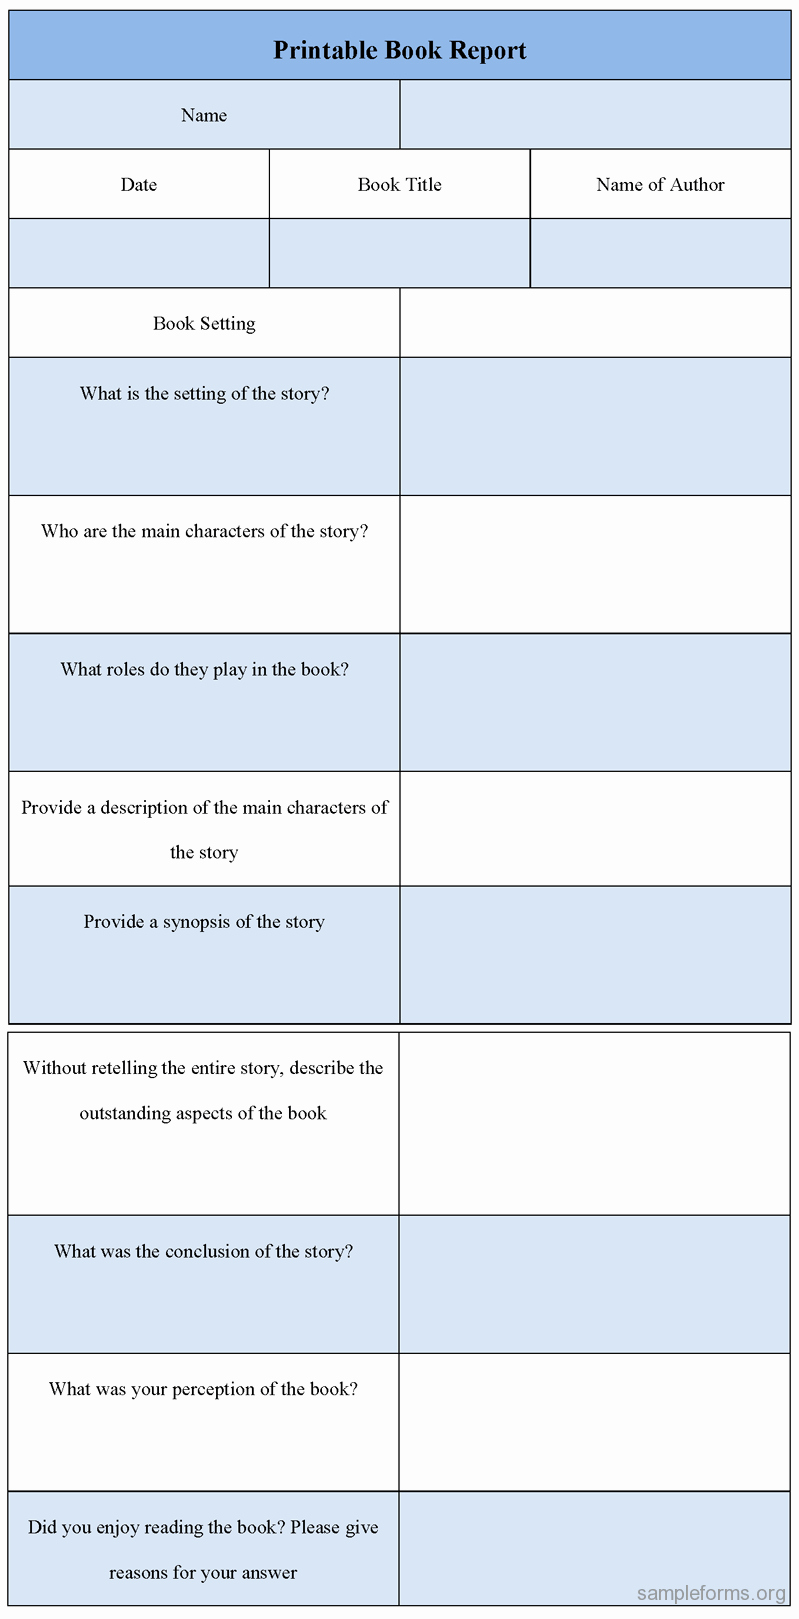 Printable Book Report forms Elegant Printable Book Report form Sample forms